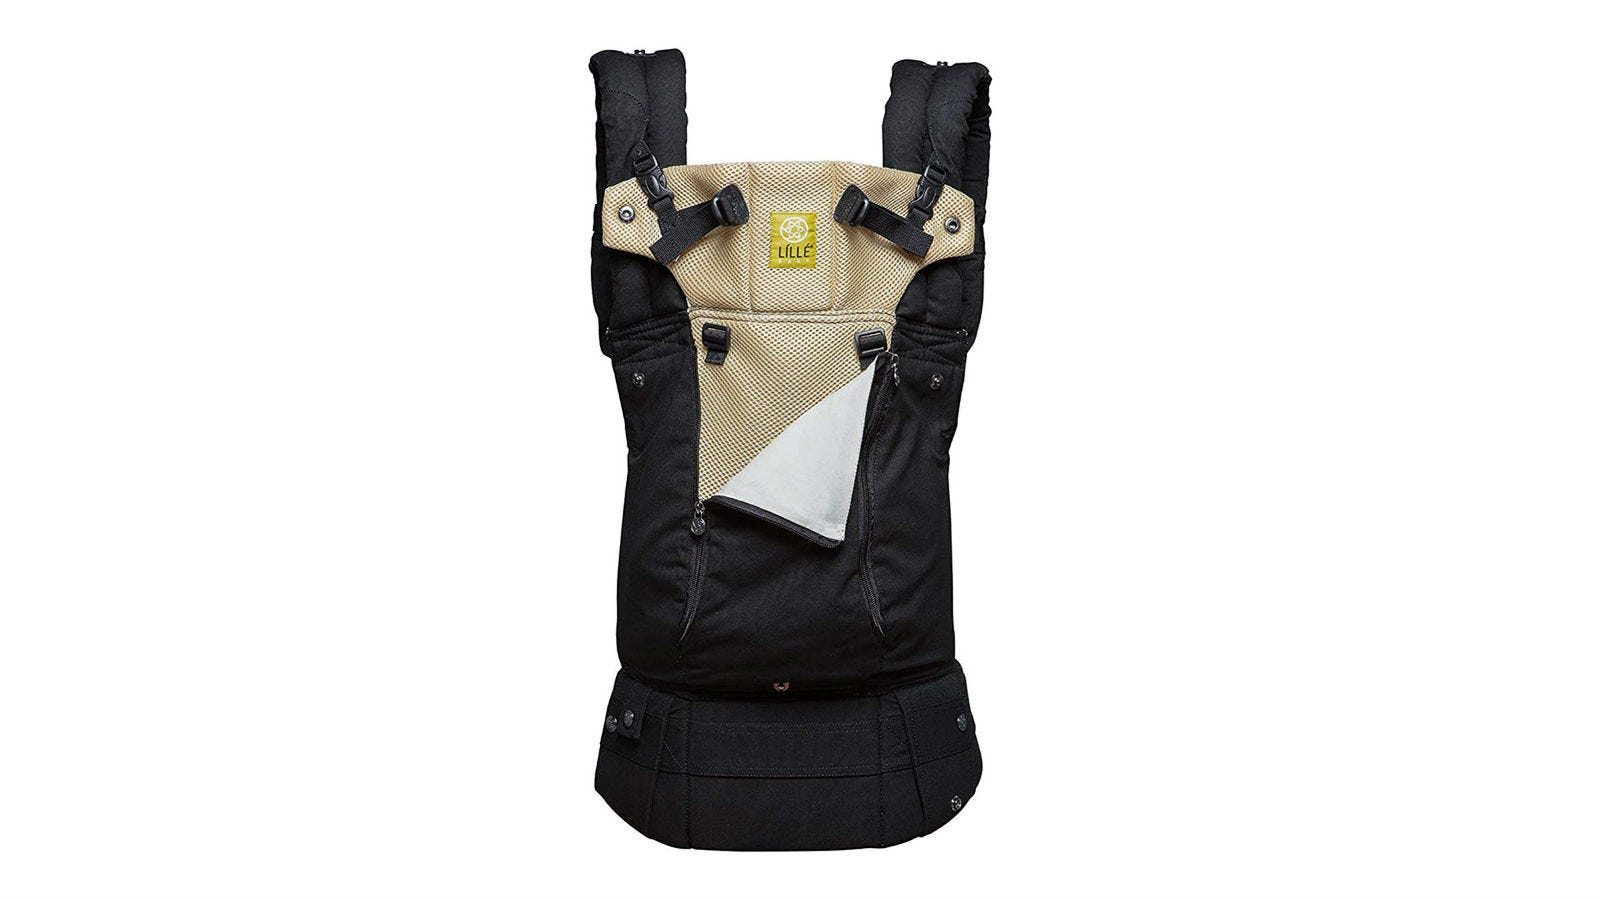 The LÍLLÉbaby Complete All Seasons Baby Carrier.